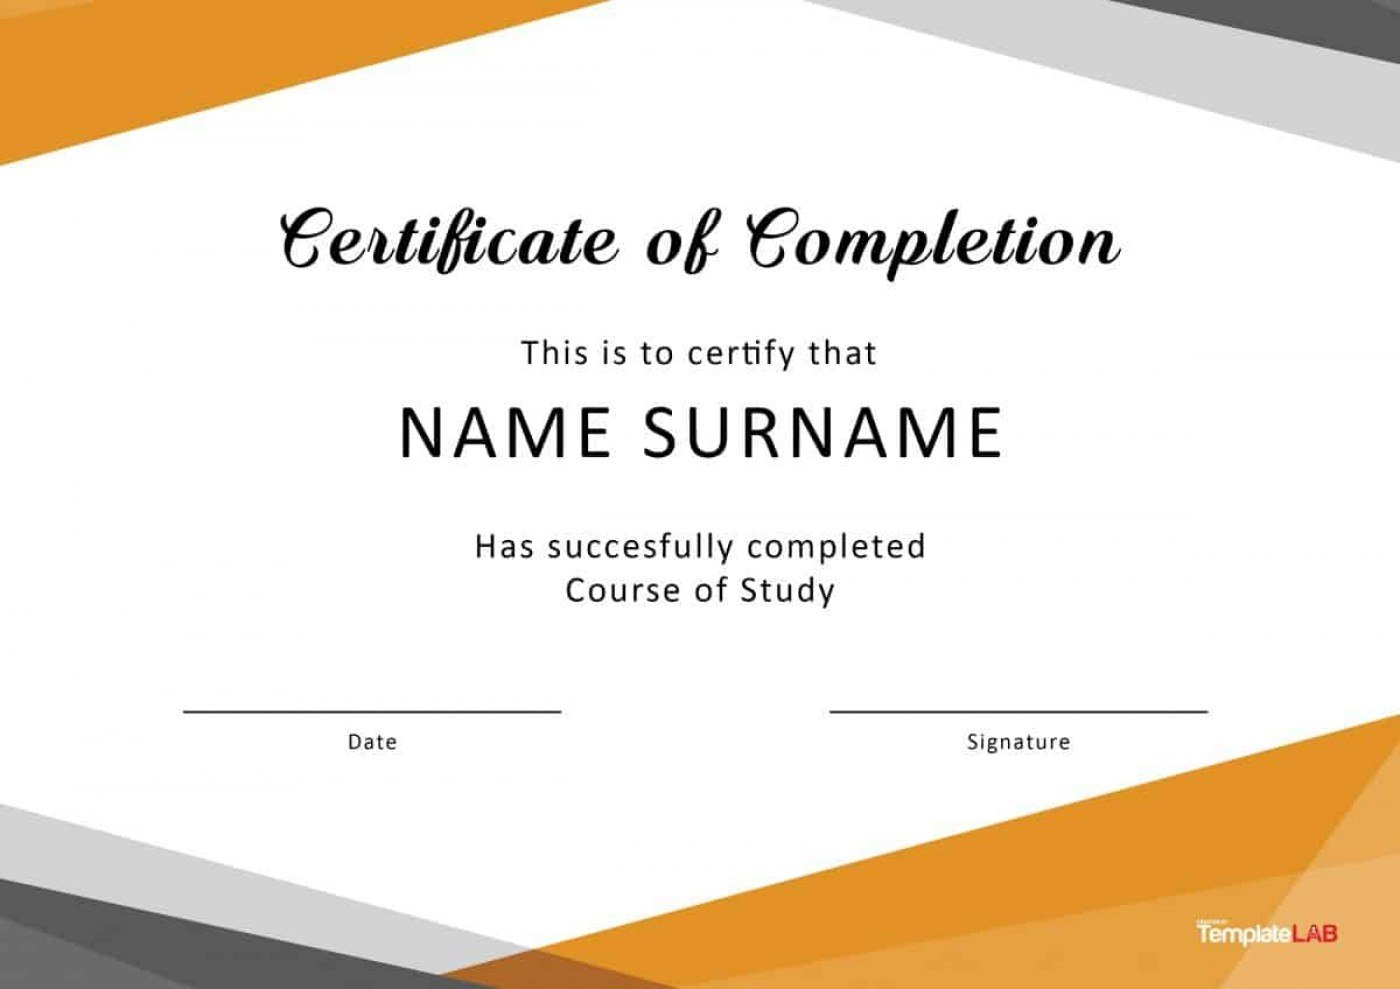 Training Certificate Template Free Ideas Forklift Also Fresh Intended For Golf Certificate Template Free